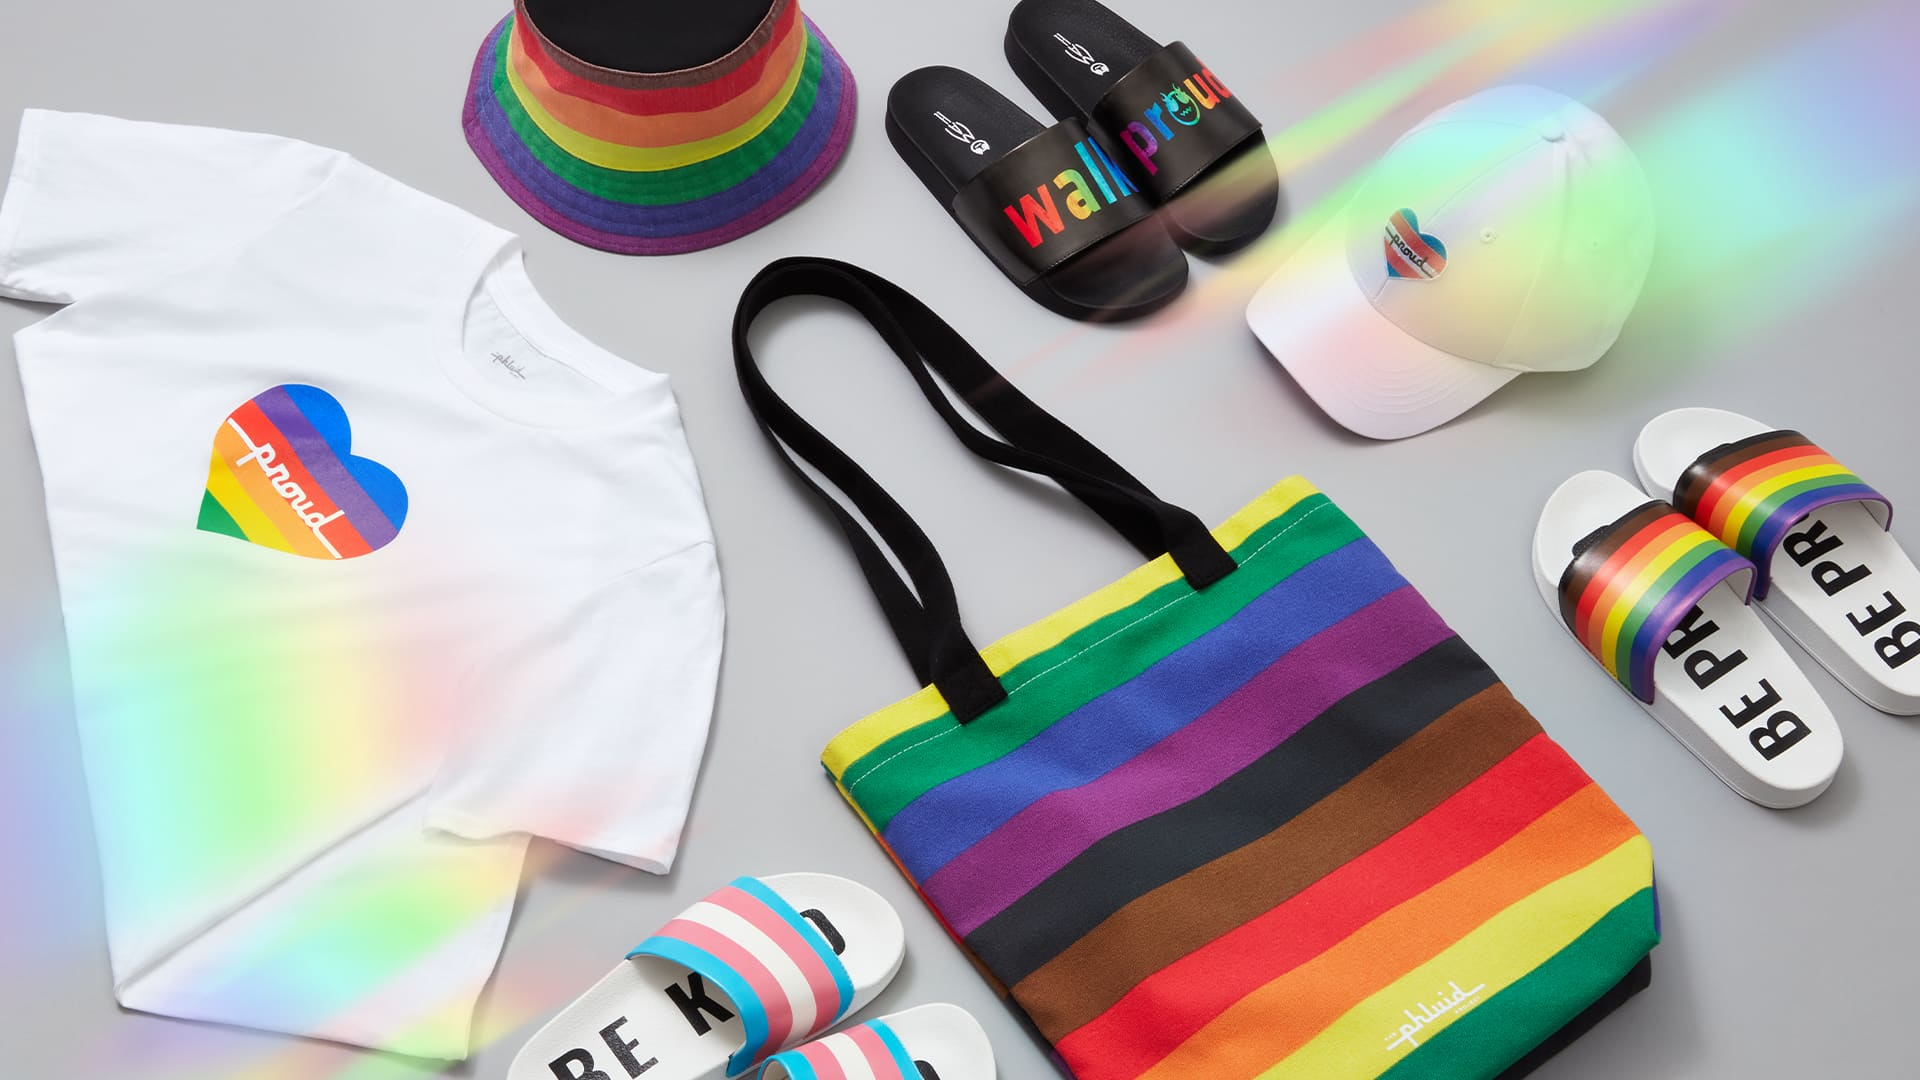 The off-price retailer Saks Off Fifth has teamed up with The Phluid Project to create a line of gender-fluid apparel, coinciding with Pride Month.